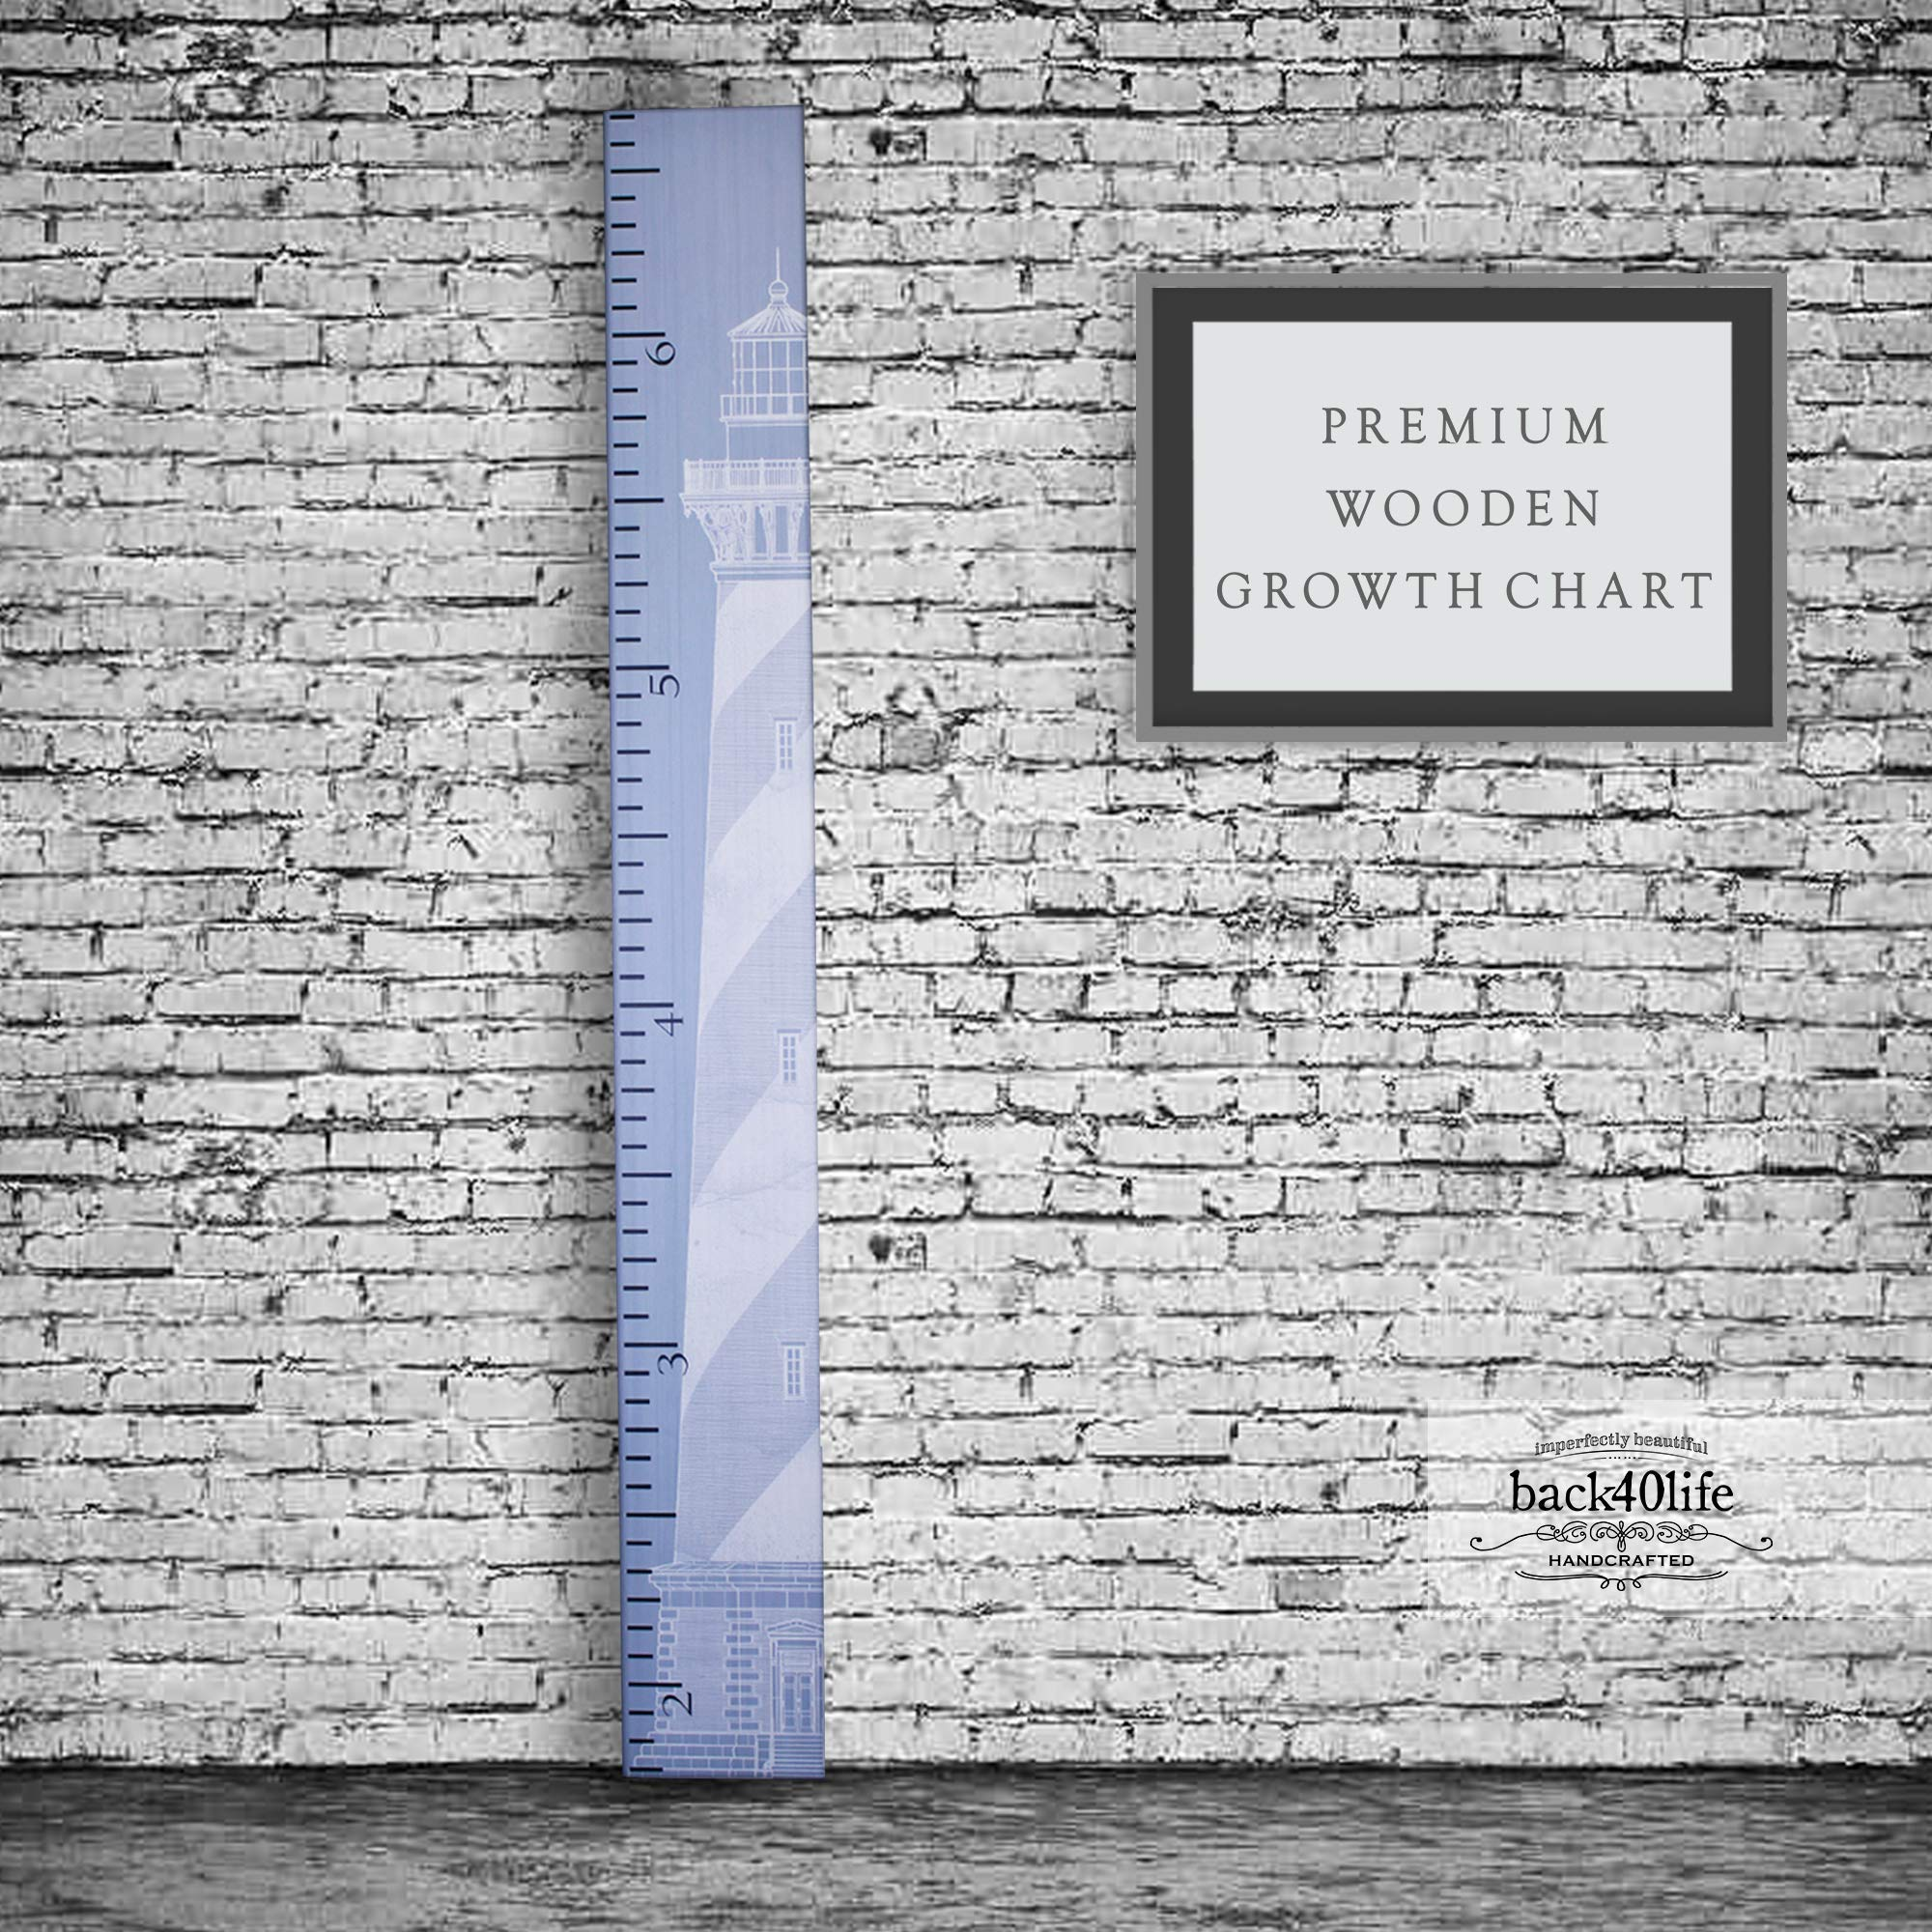 Back40Life - Premium Series - (The Lighthouse) Wooden Growth Chart Height Ruler (Slate Blue) by Back40Life